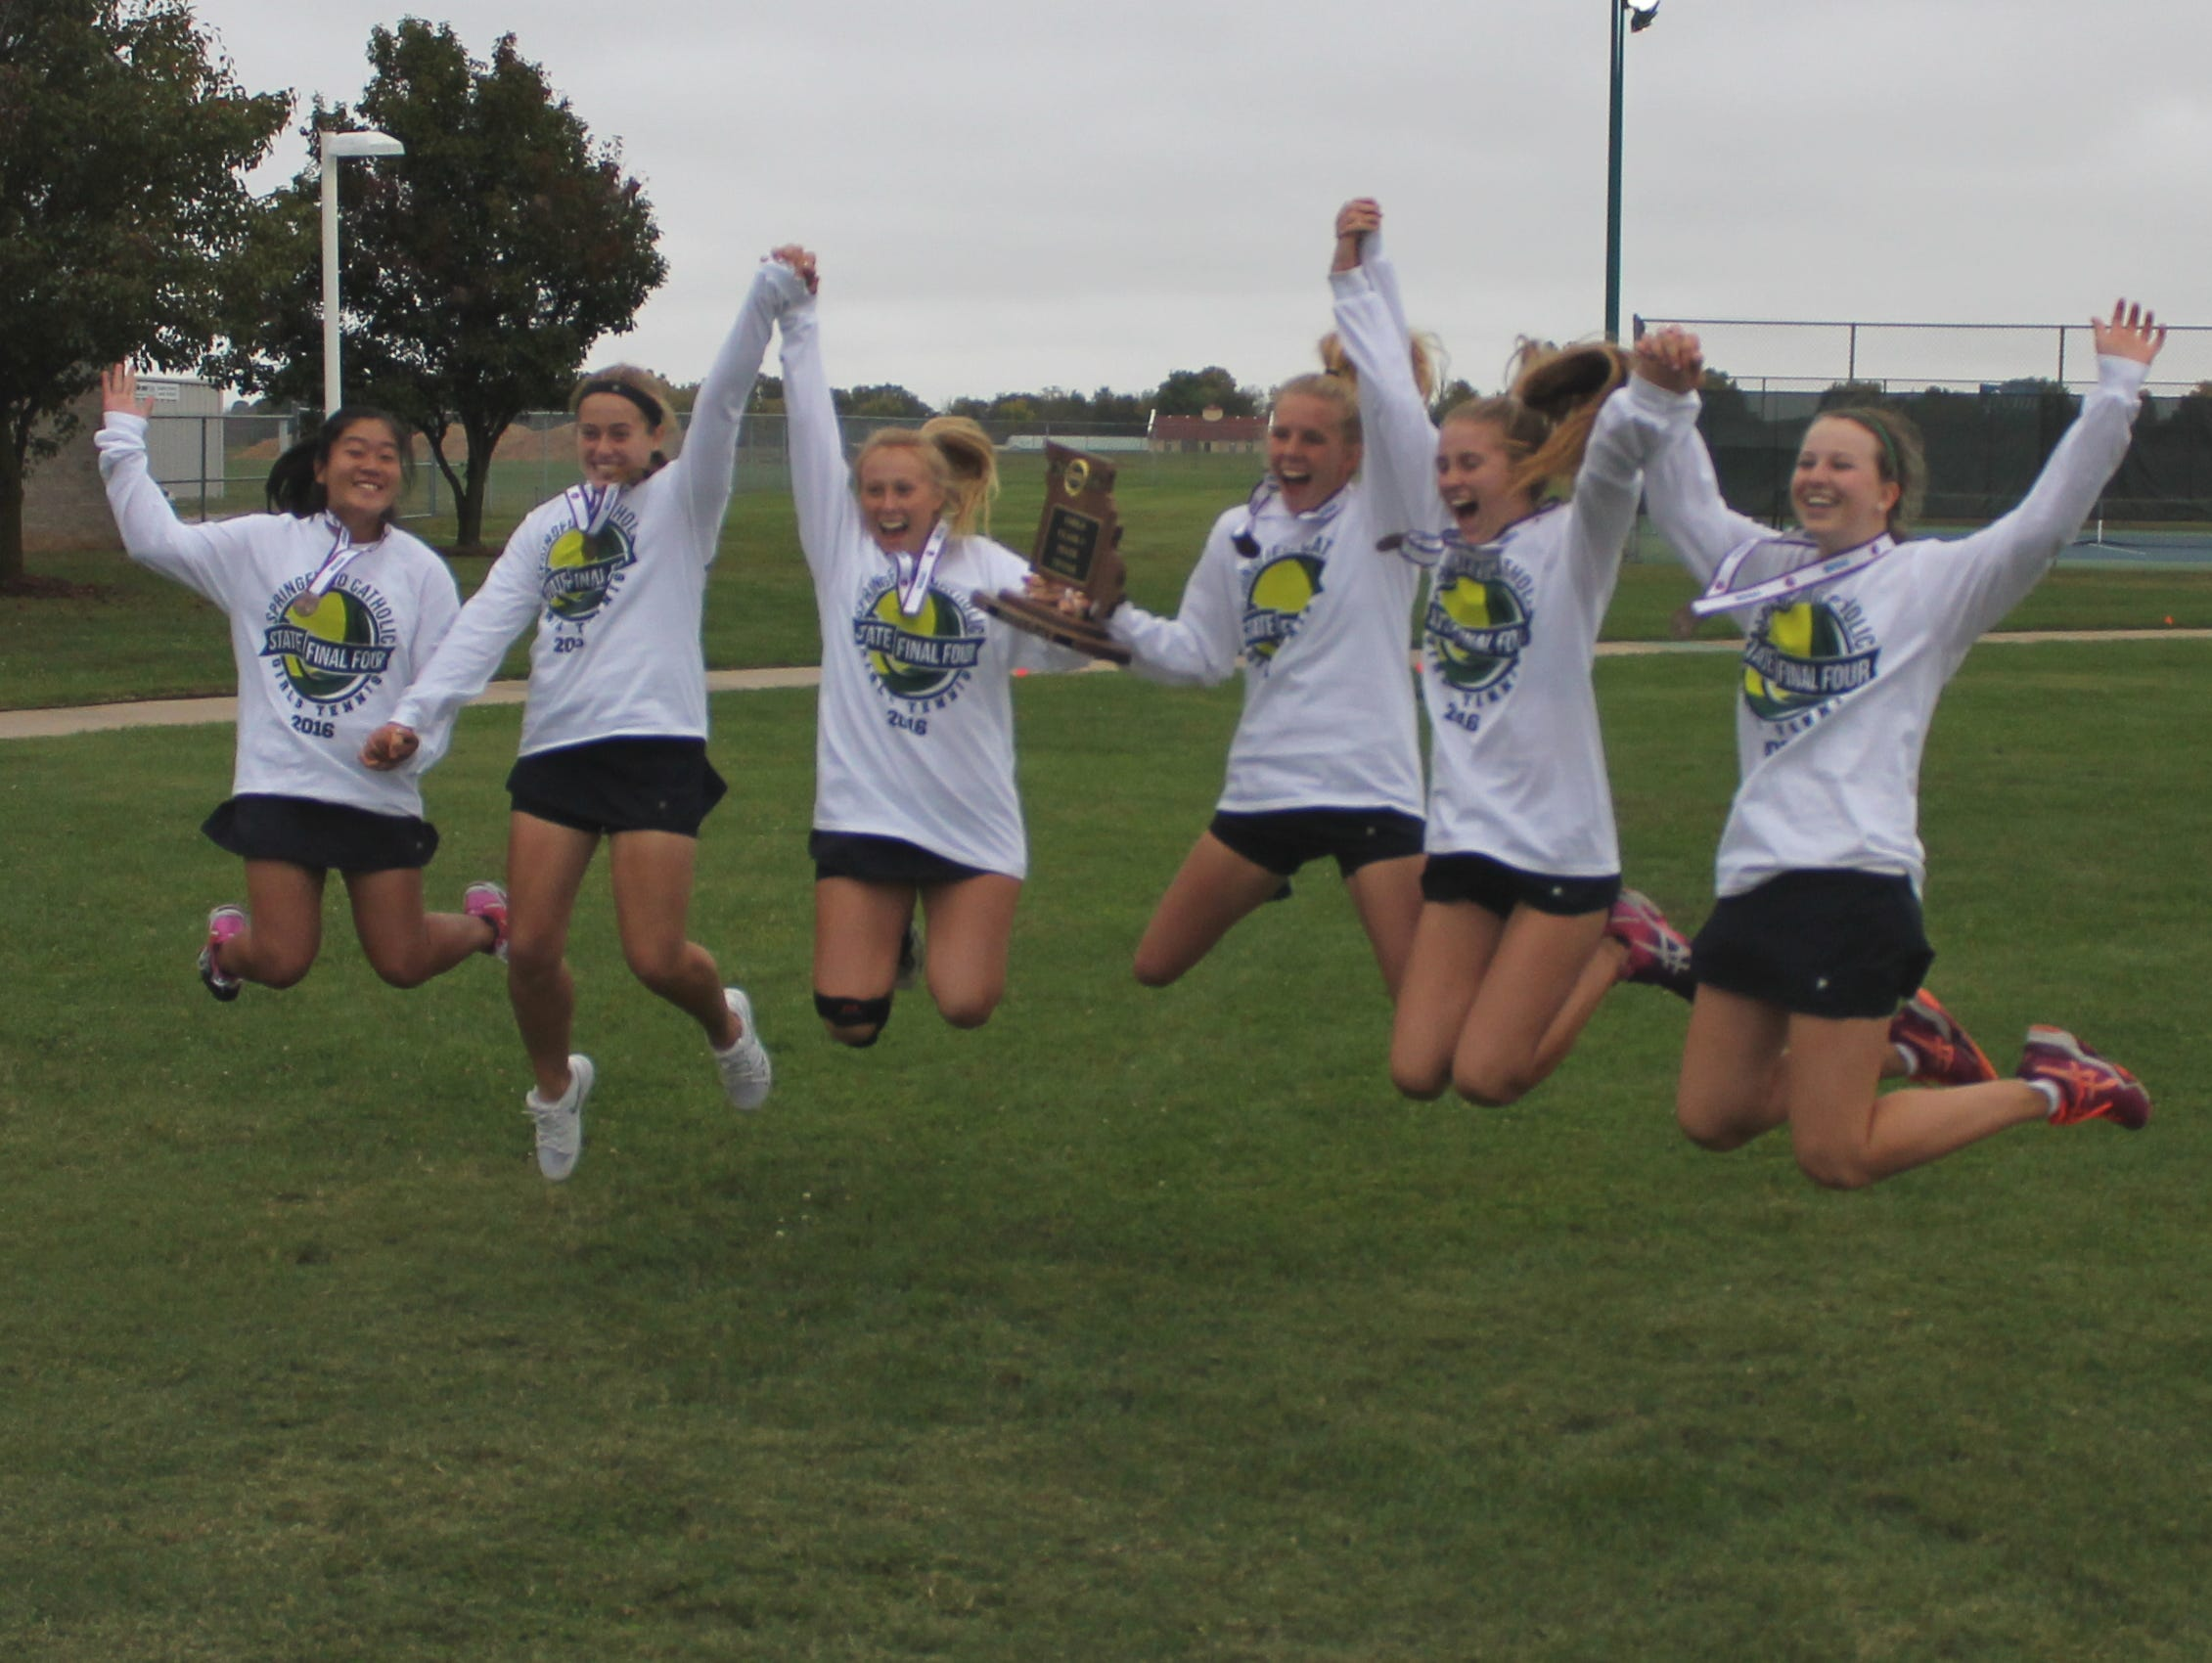 Springfield Catholic's top six tennis players jump in the air to pose for a celebratory photograph after winning fourth place in the 2016 state team tennis tournament at Cooper Tennis Complex.